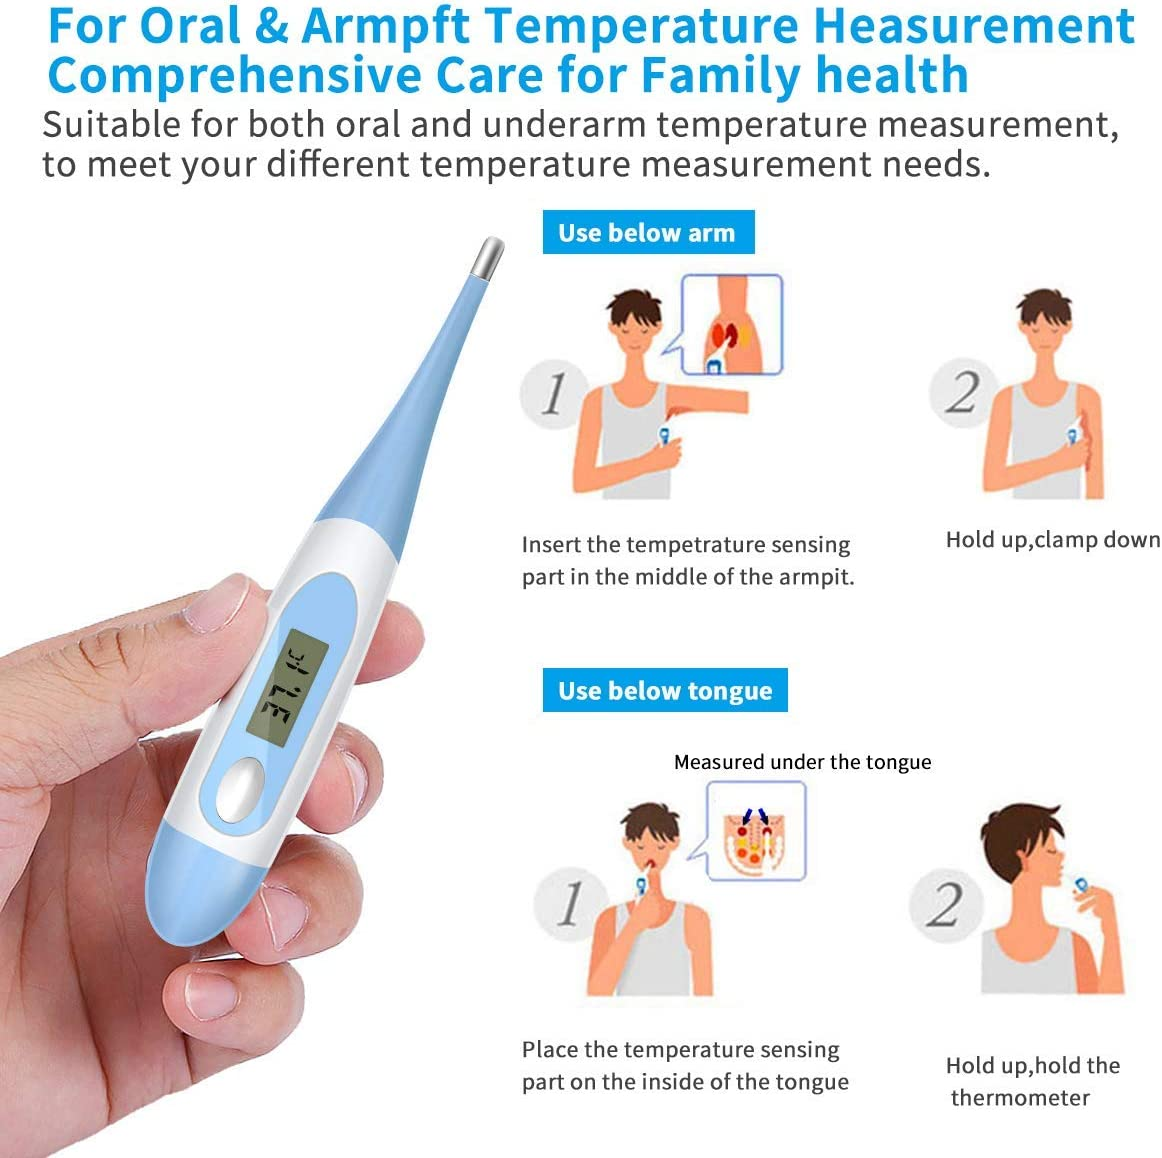 Oral Digital Body Thermometer Underarm LCD Thermometer Waterproof Basal Thermometer with Beeper and Memory for Newborns Soft Tip Accurate Baby Oral Kids and Adults Rectal